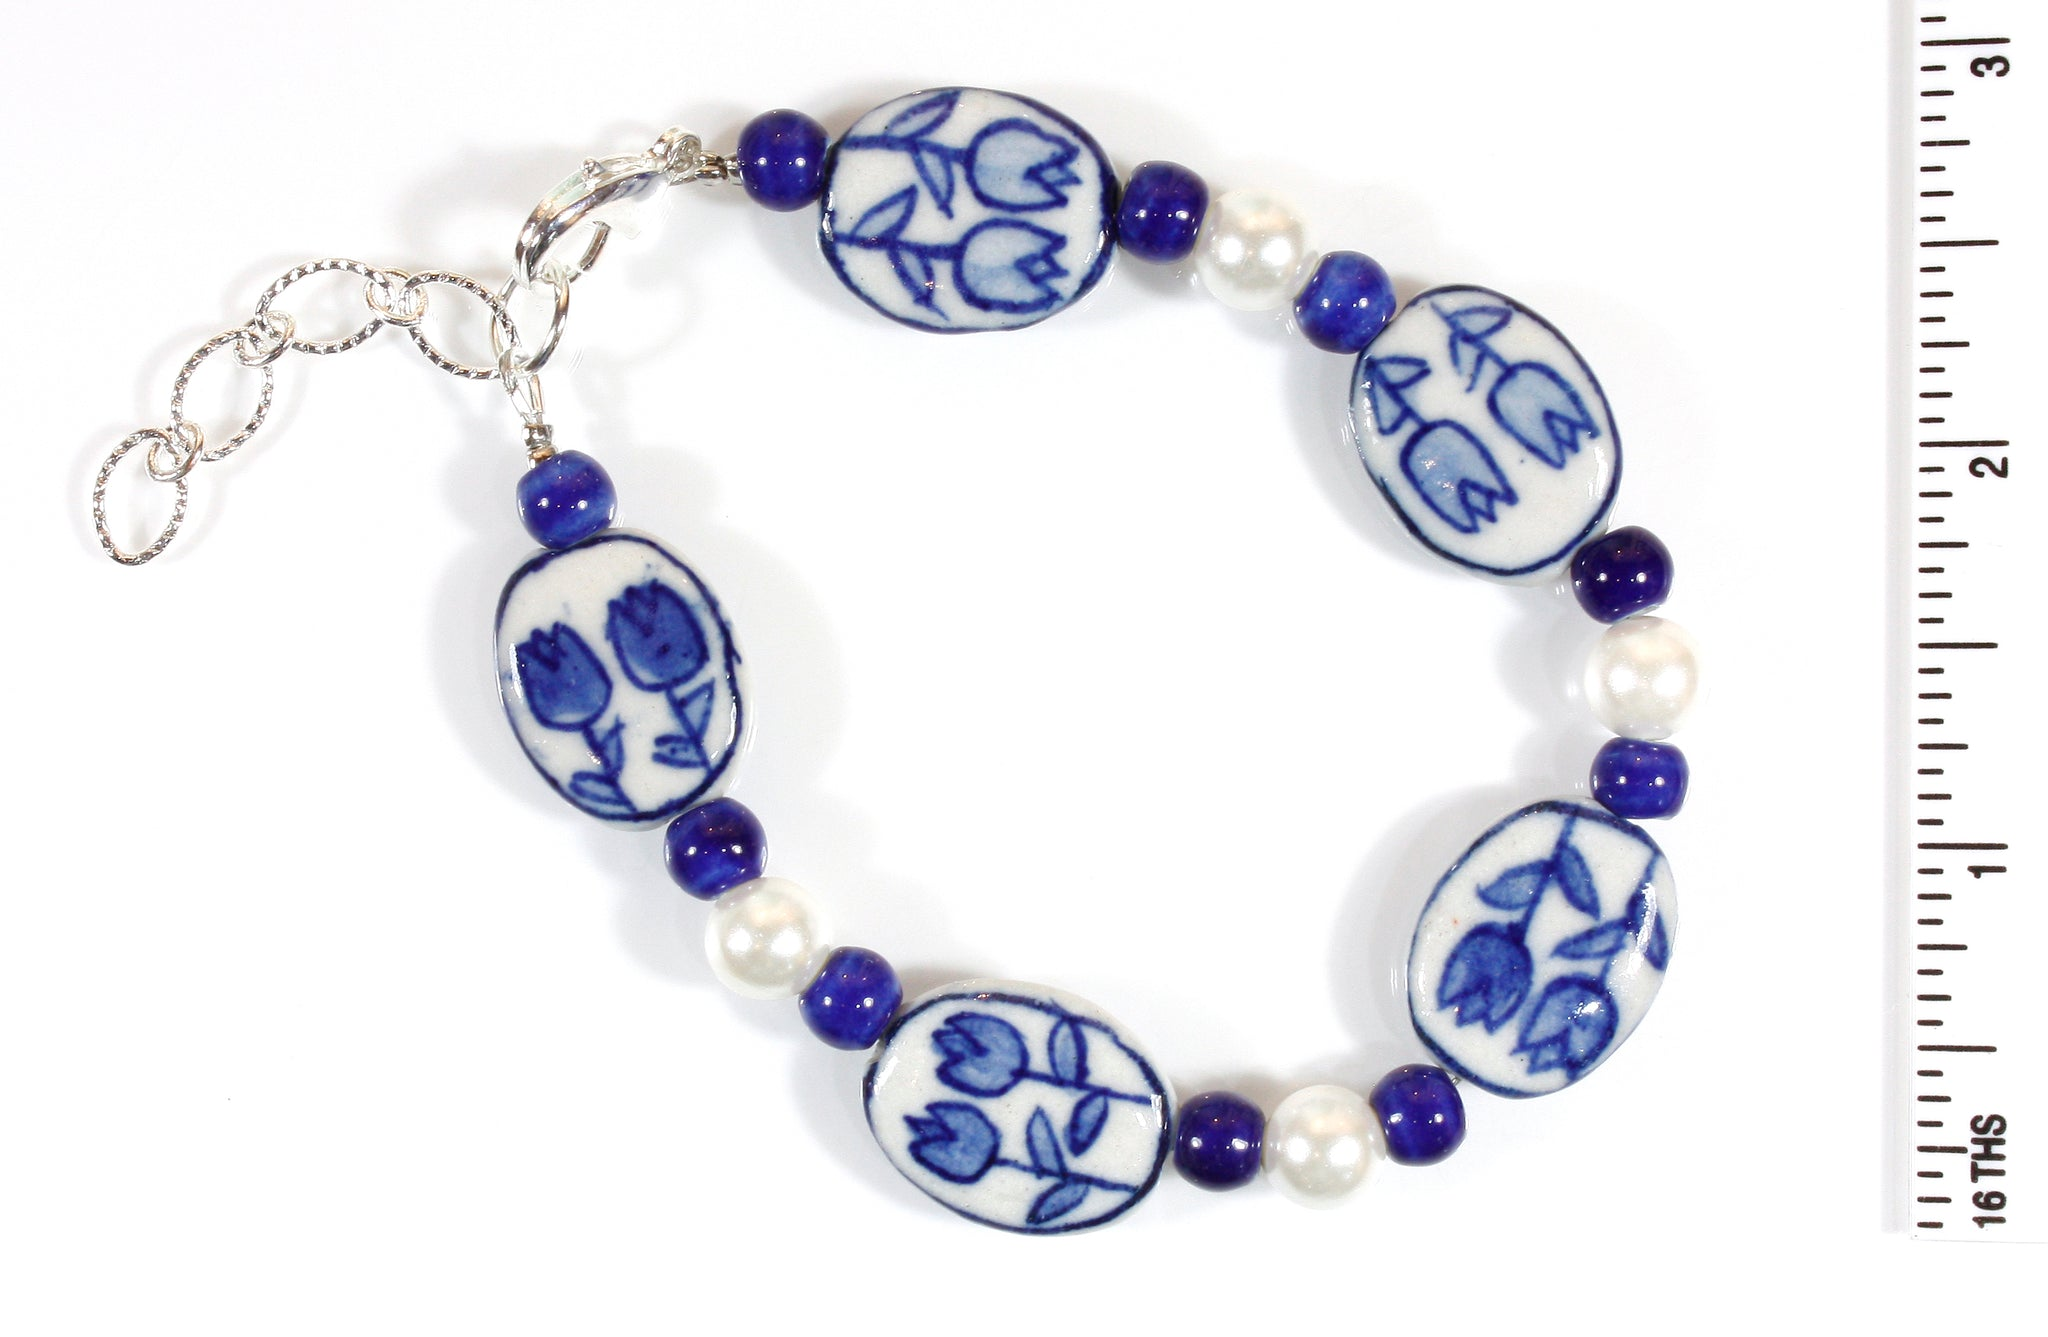 """Tulip Time"" Bracelet in Blue Delft Ceramic Beads, Size Medium/Large"